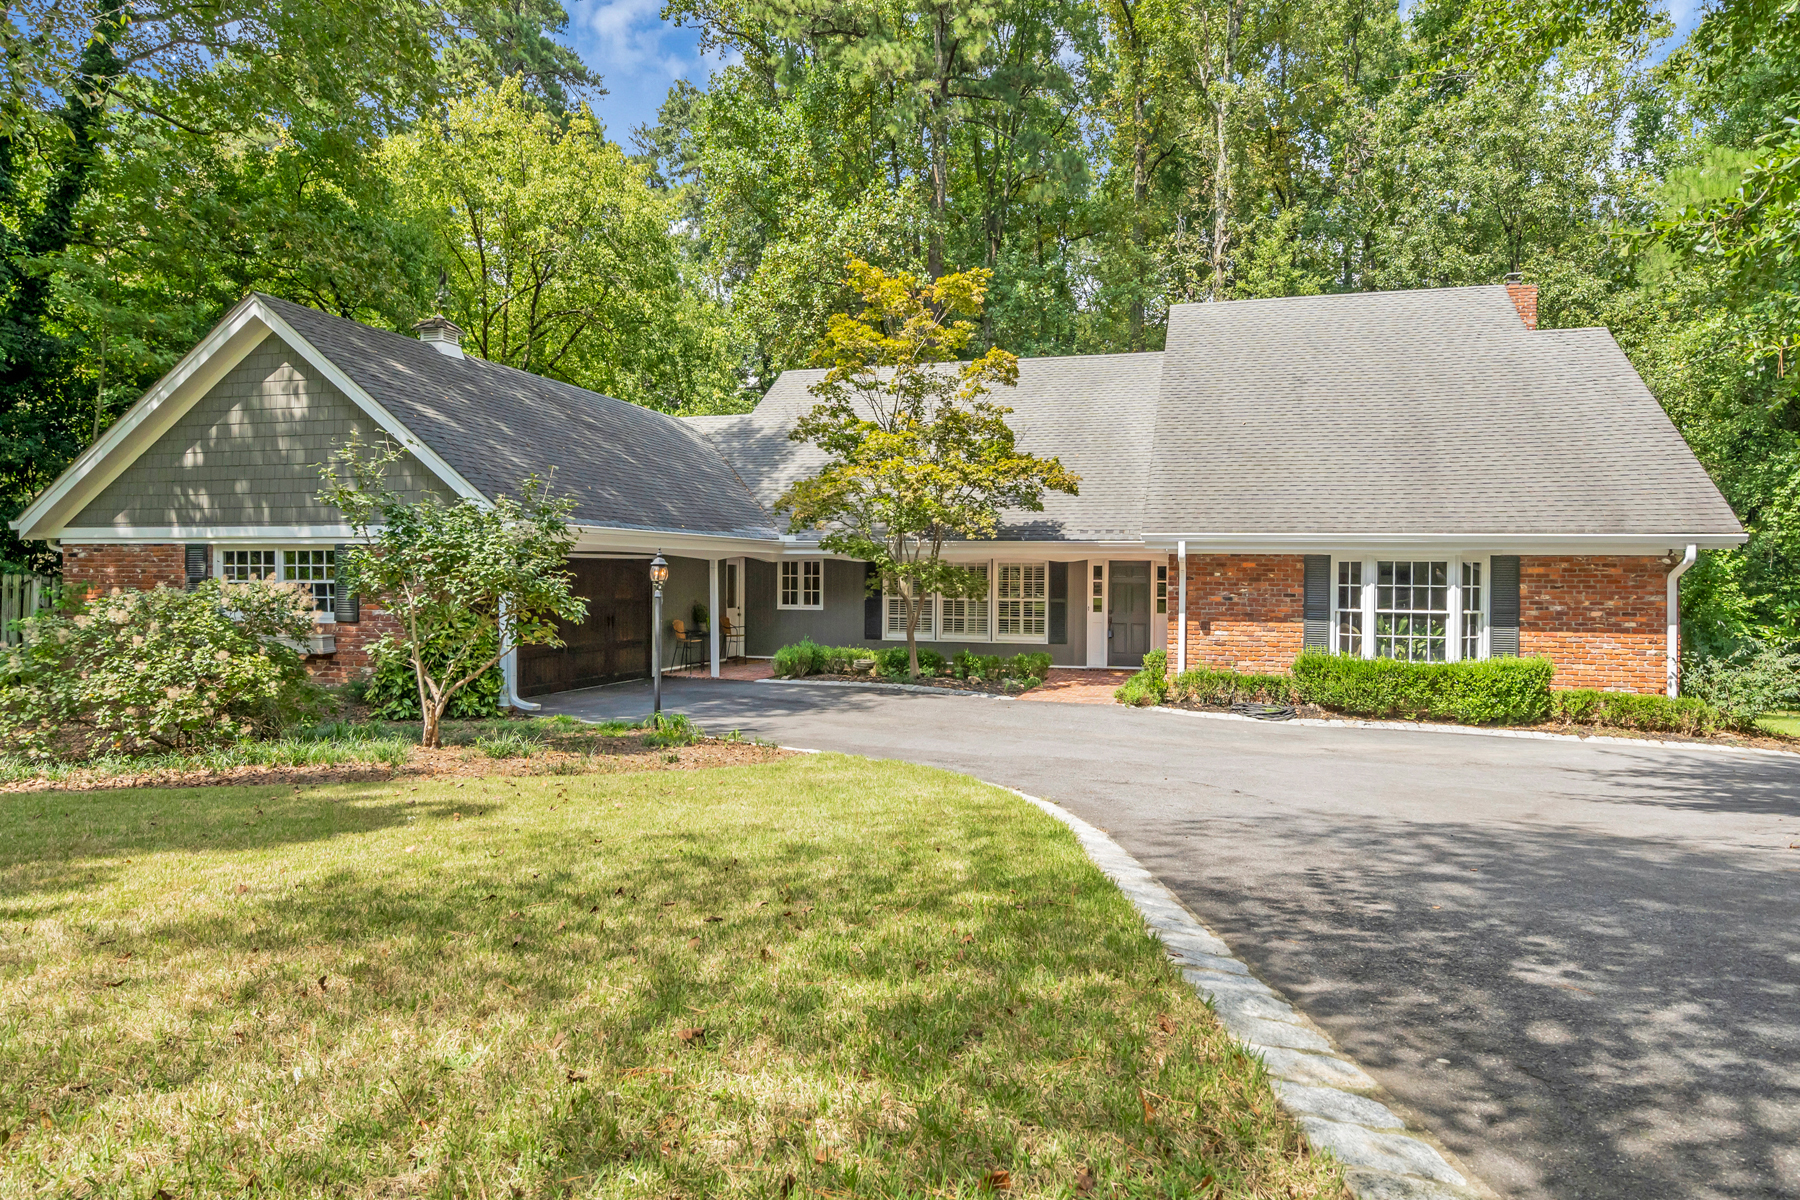 Property for Sale at Fabulous Updated Home On Almost An Acre Lot 3435 Valley Road NW Atlanta, Georgia 30305 United States